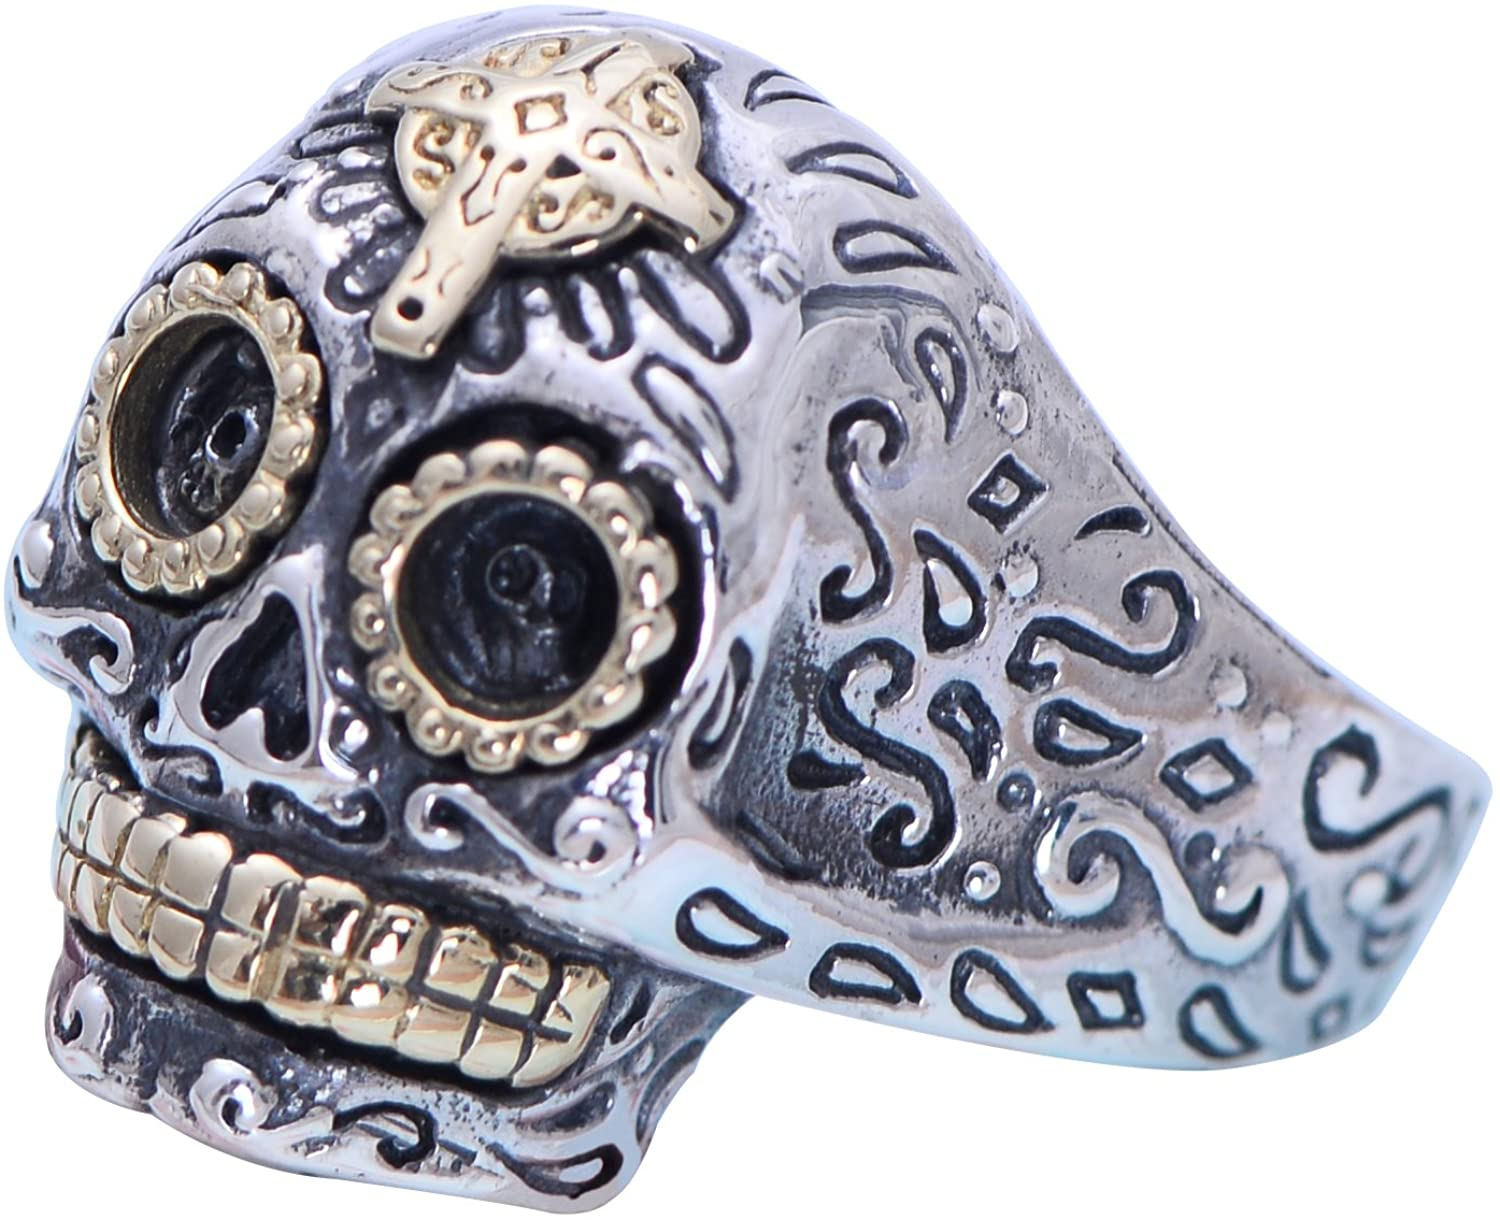 Gothic Two Tone 925 Sterling Silver Biker Skull Ring Jewelry Golden Cross for Men Women Adjustable Size 8-11